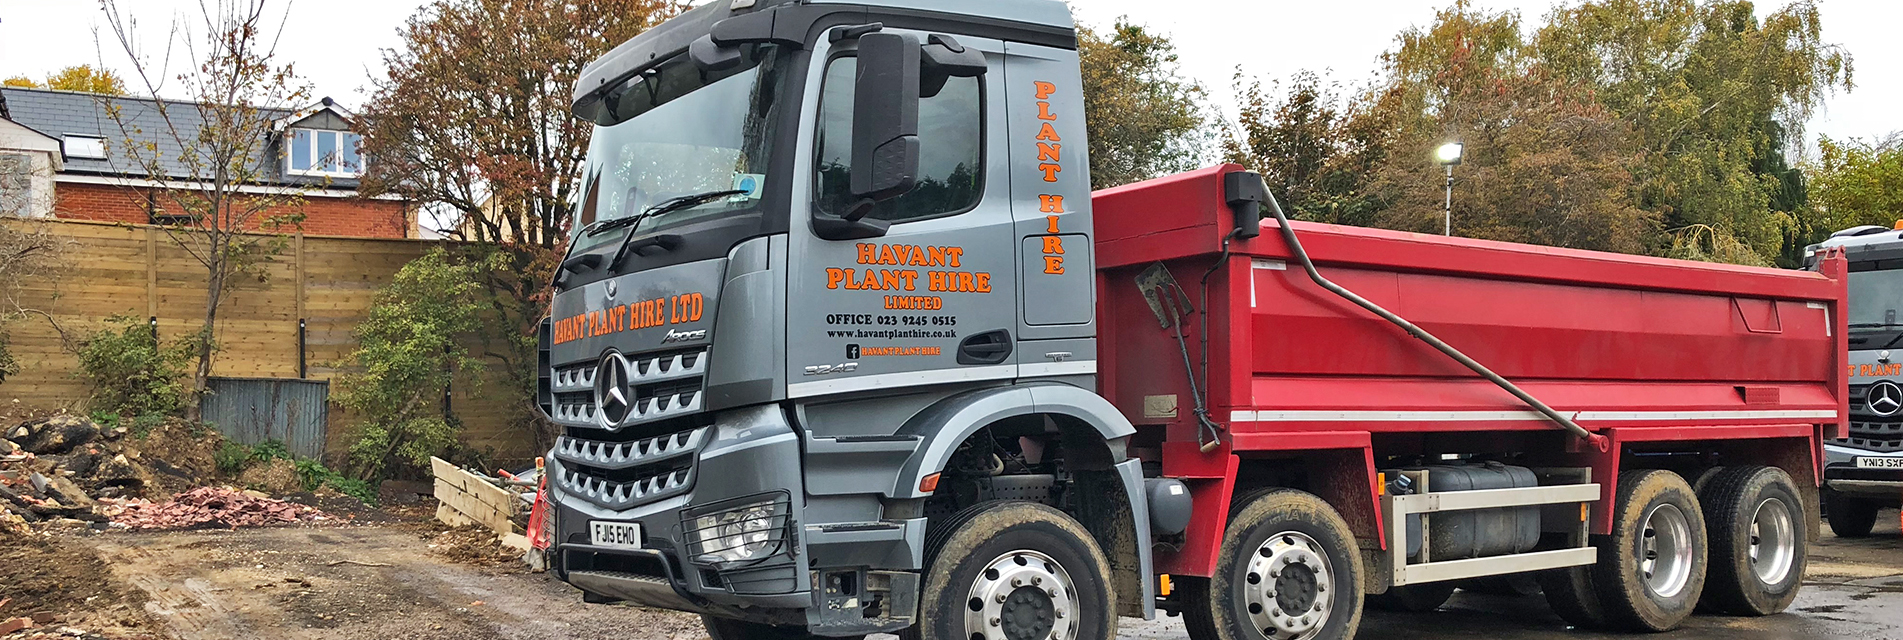 Haulage Transport Hire Locksheath